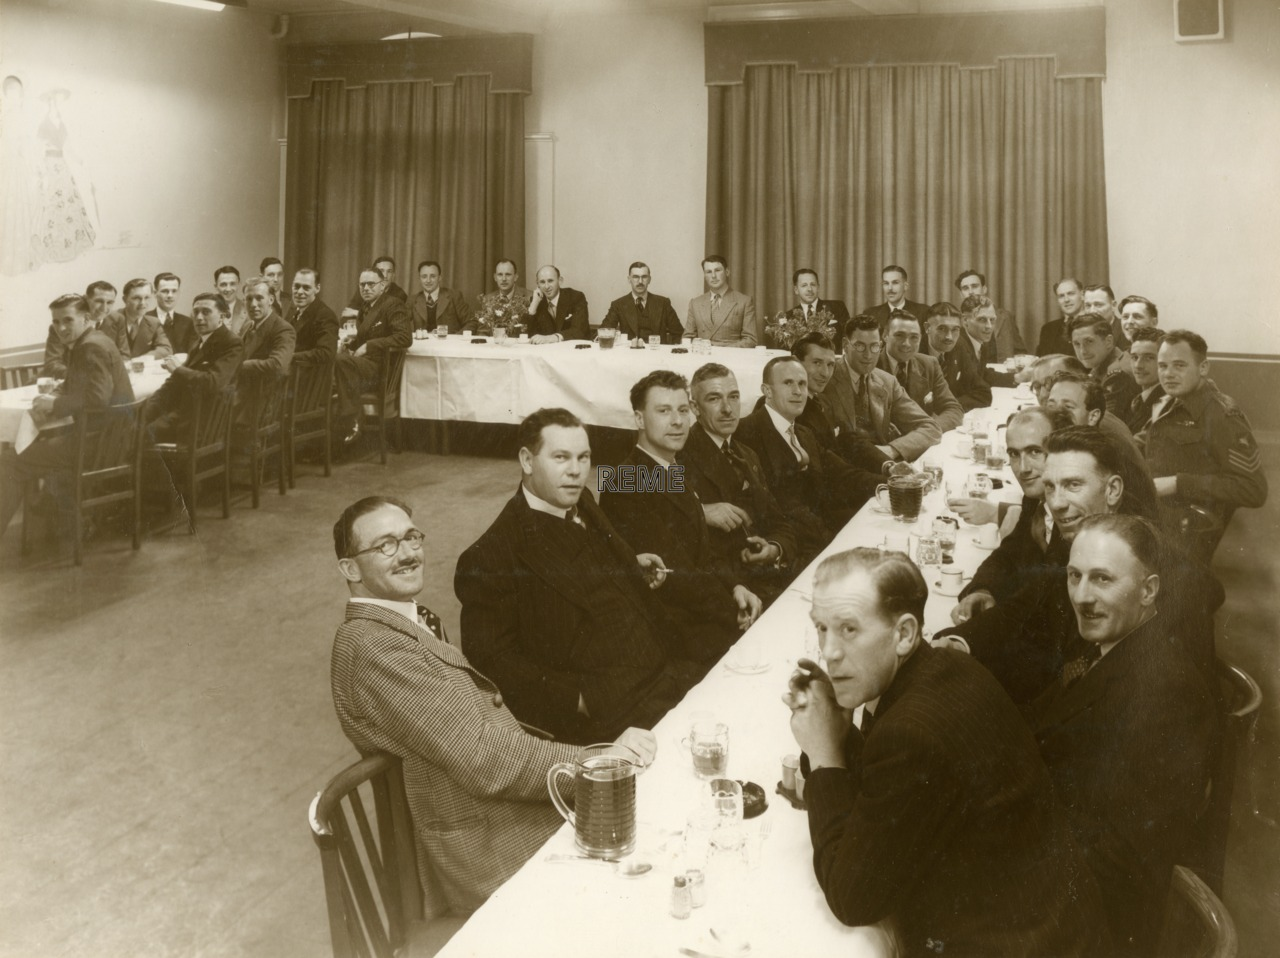 The first Reunion of REME Airborne personnel at The Chevrons Club, Sloane Square, London, 1948